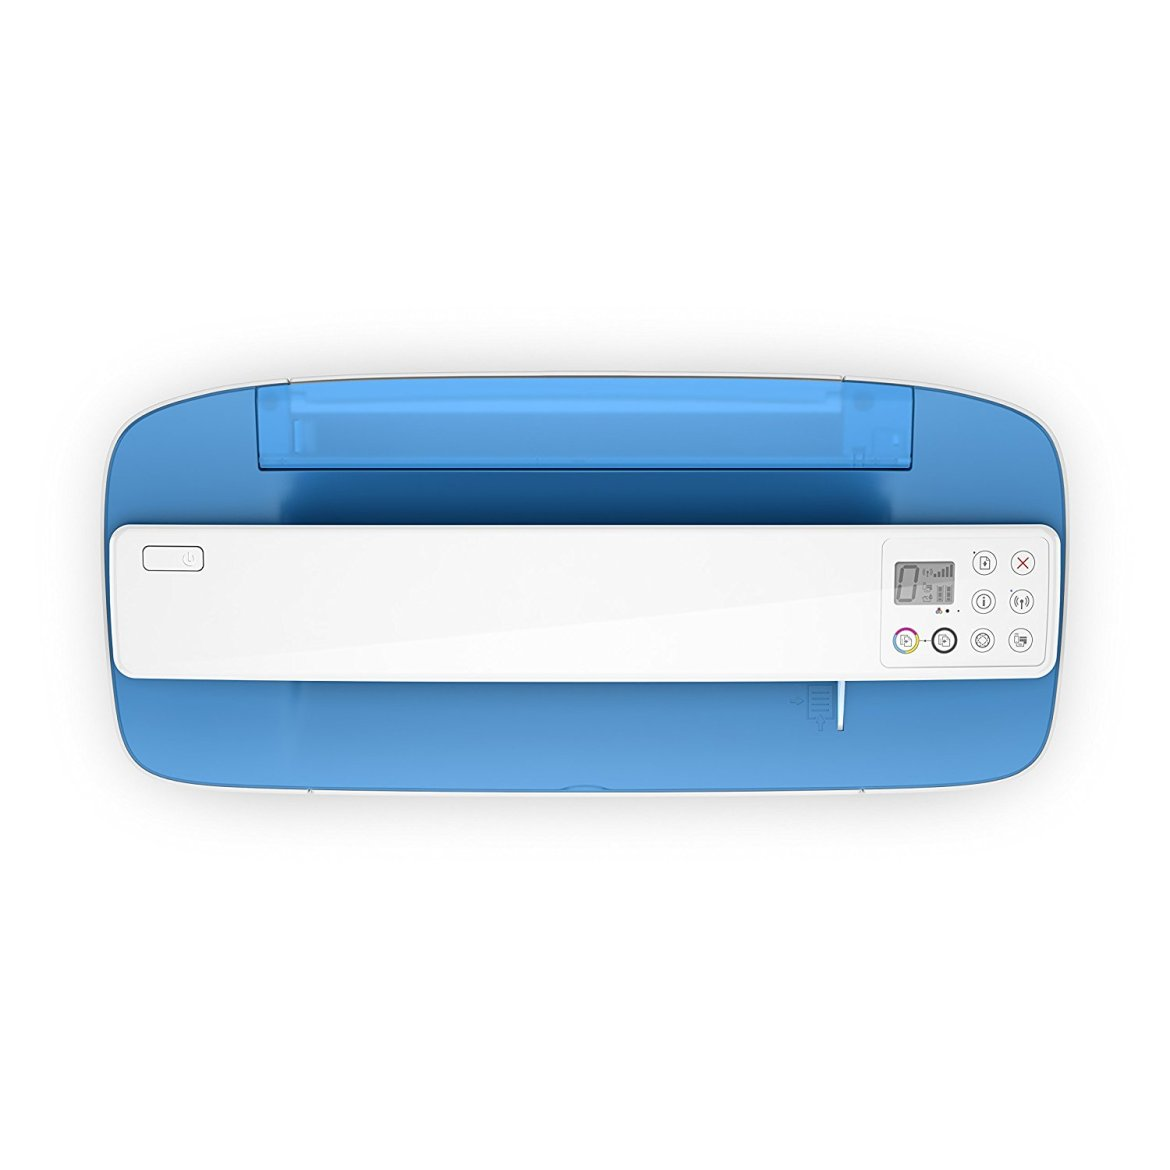 71O7QKRnEAL. SL1500  - Recensione HP DeskJet All in One 3720